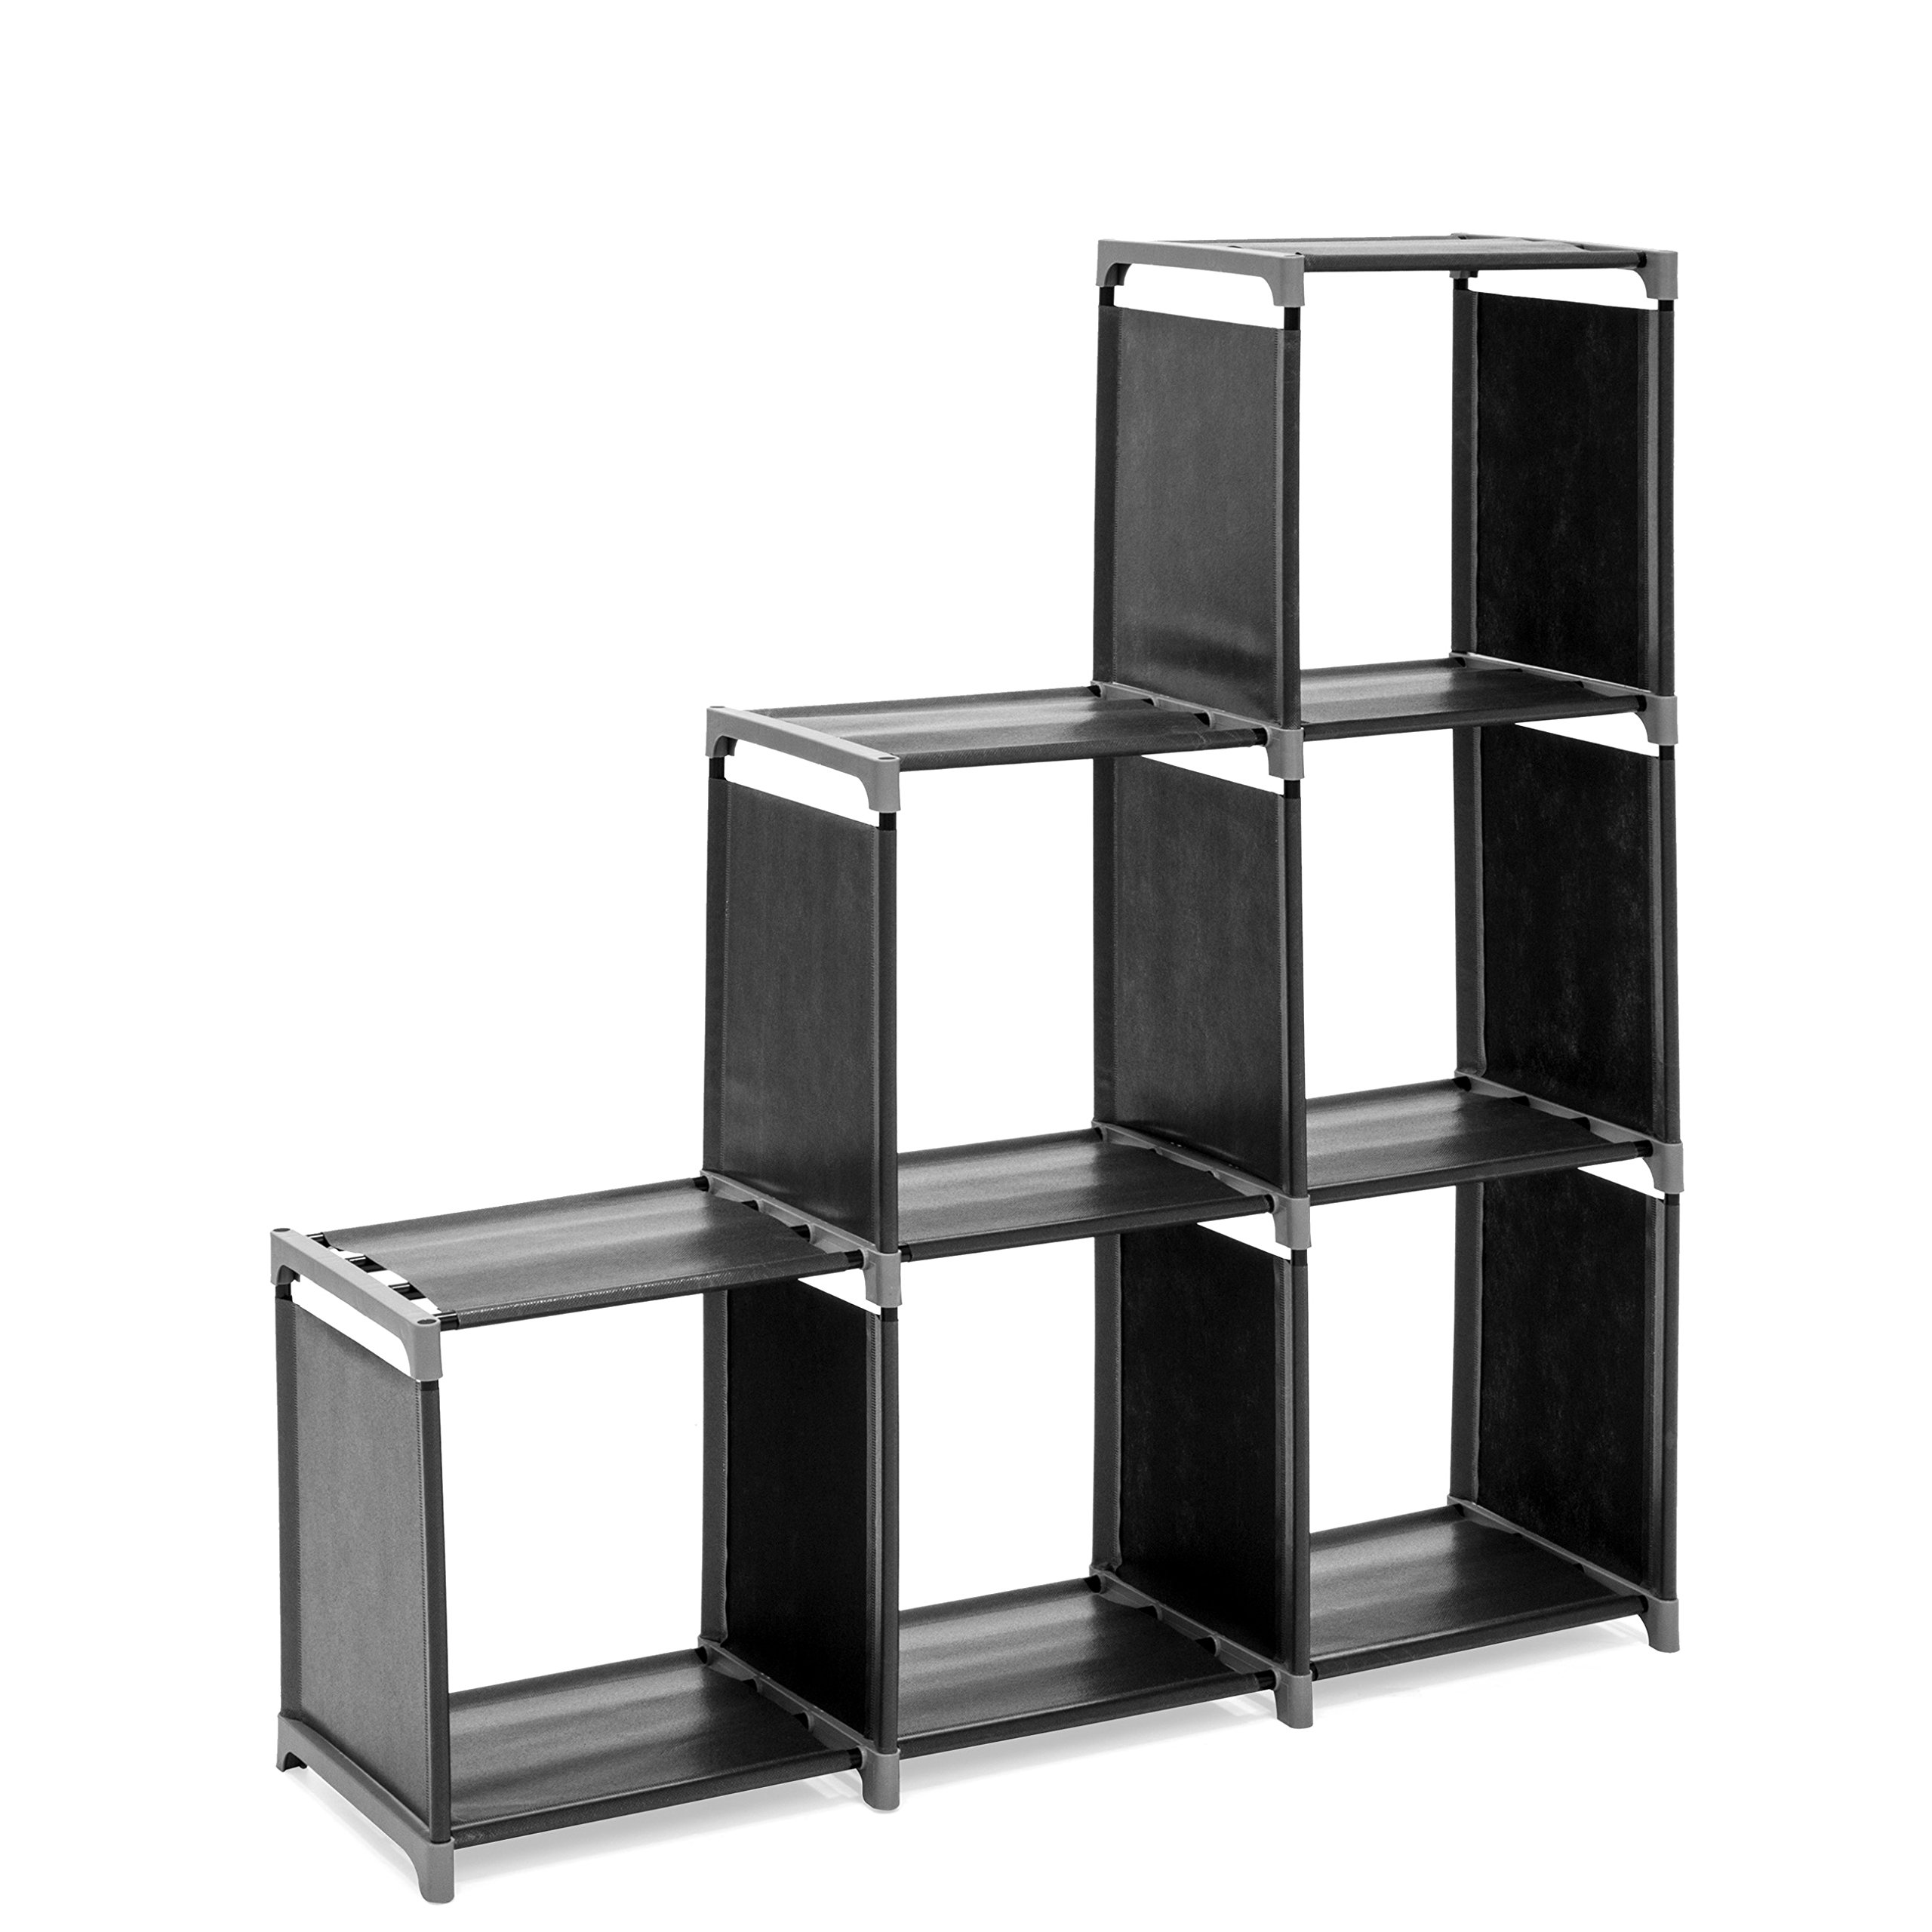 Best Choice Products 6-Drawer Multi-Purpose Shelving Cubby Storage Cabinet (Black) by Best Choice Products (Image #2)